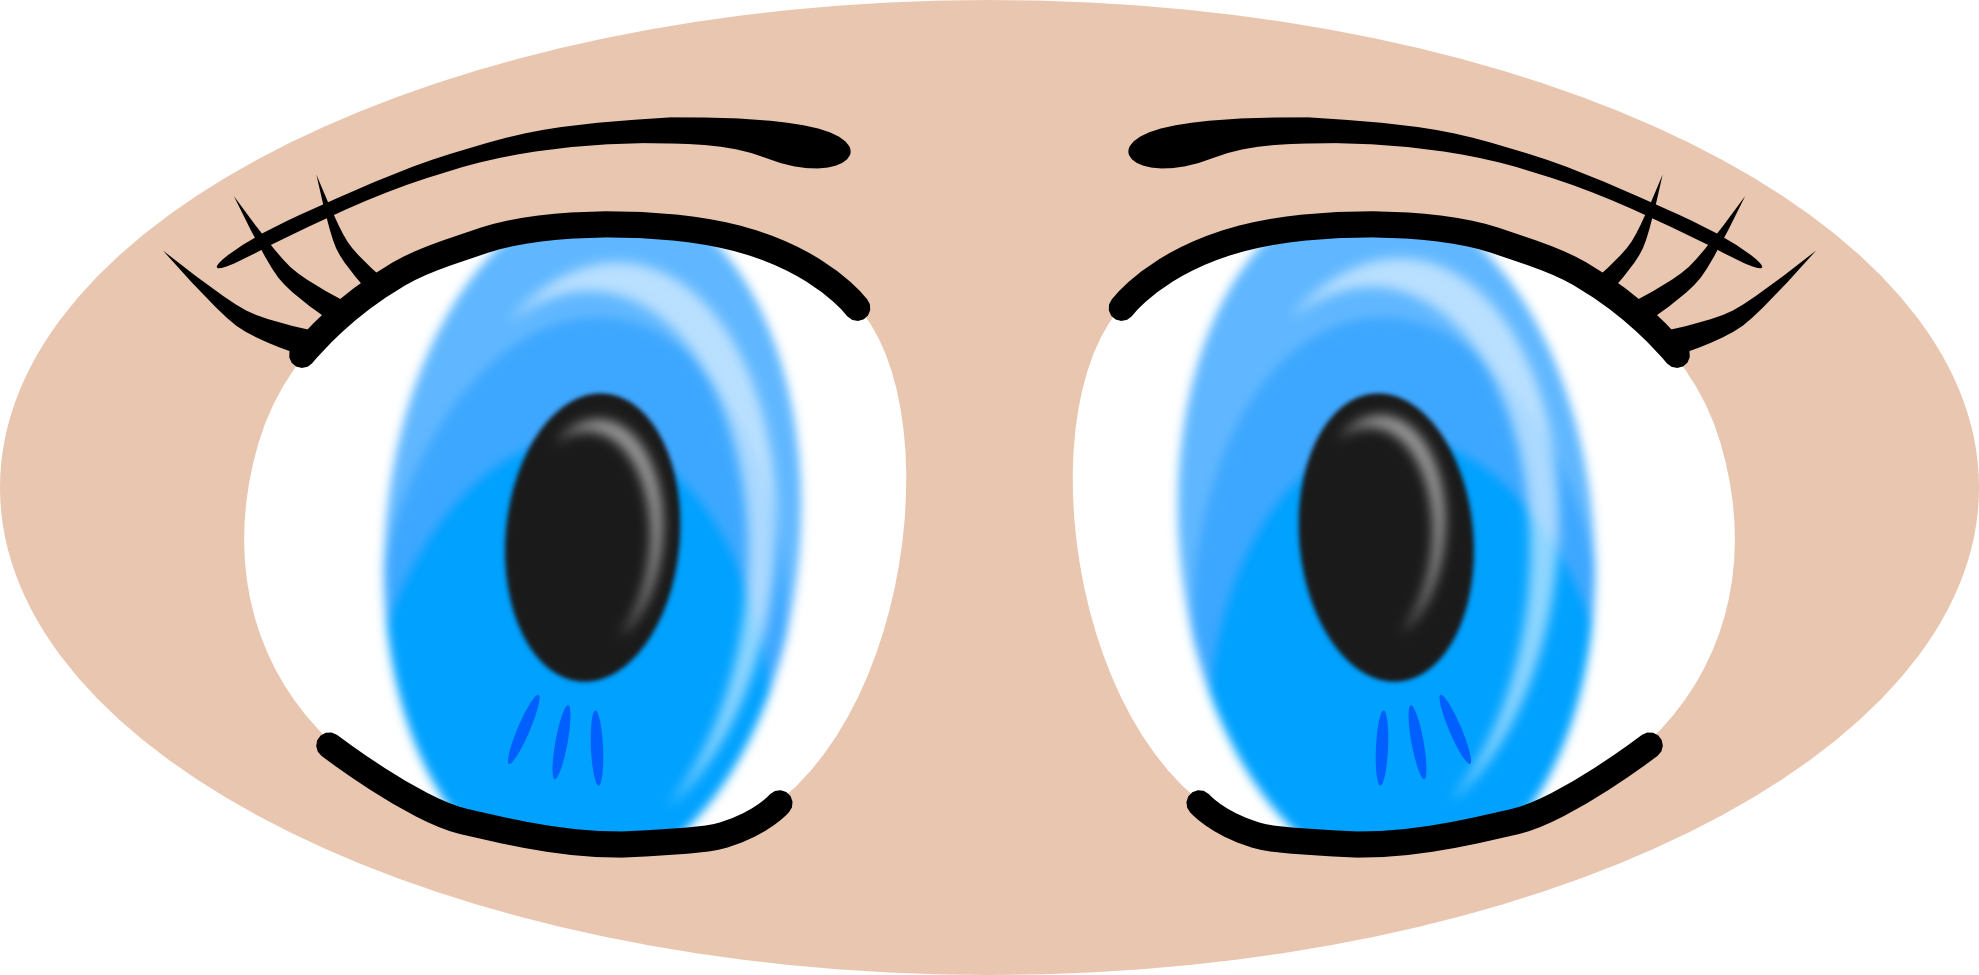 Image Source From http://cliparts.co/eyes-clip-art